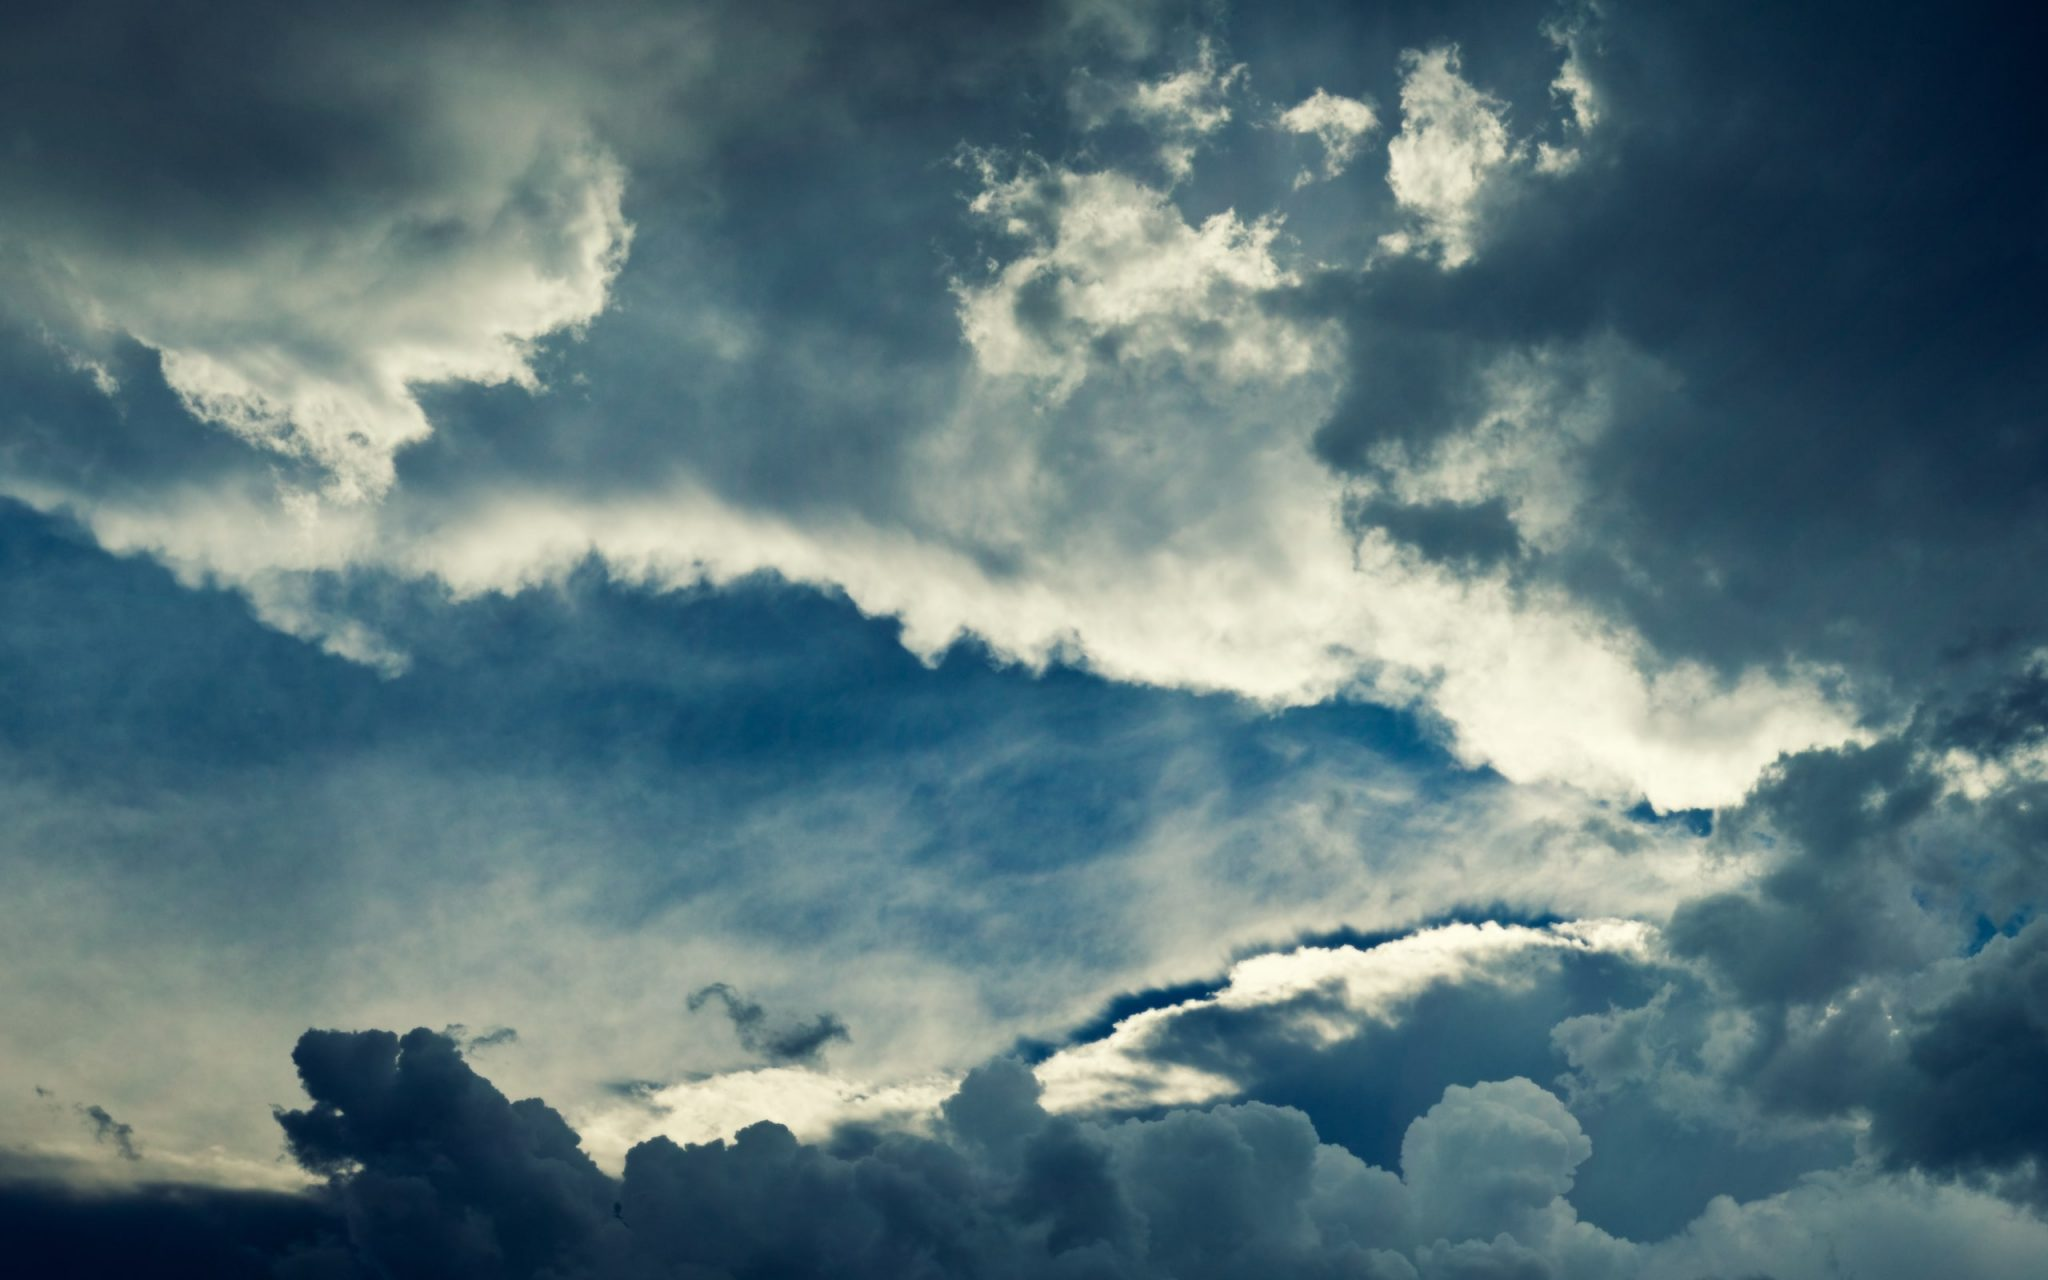 sky-cloud-serenity-image-background-wallpaper-image